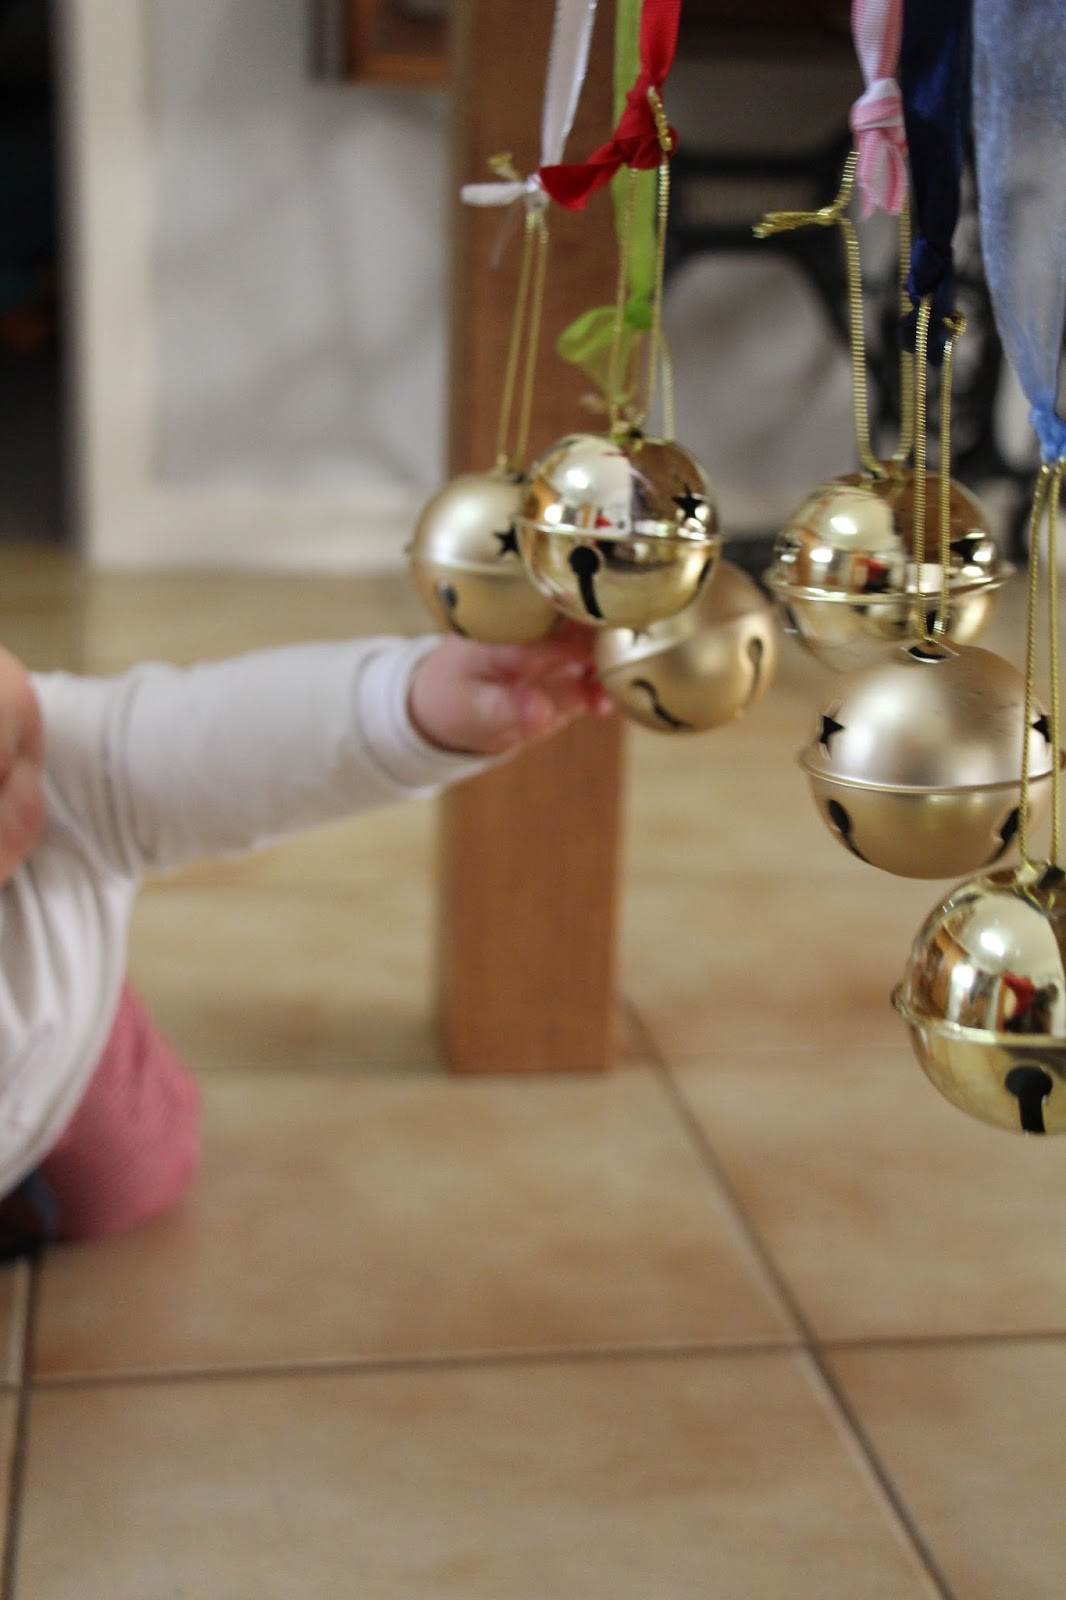 Baby touching bells hanging from a table